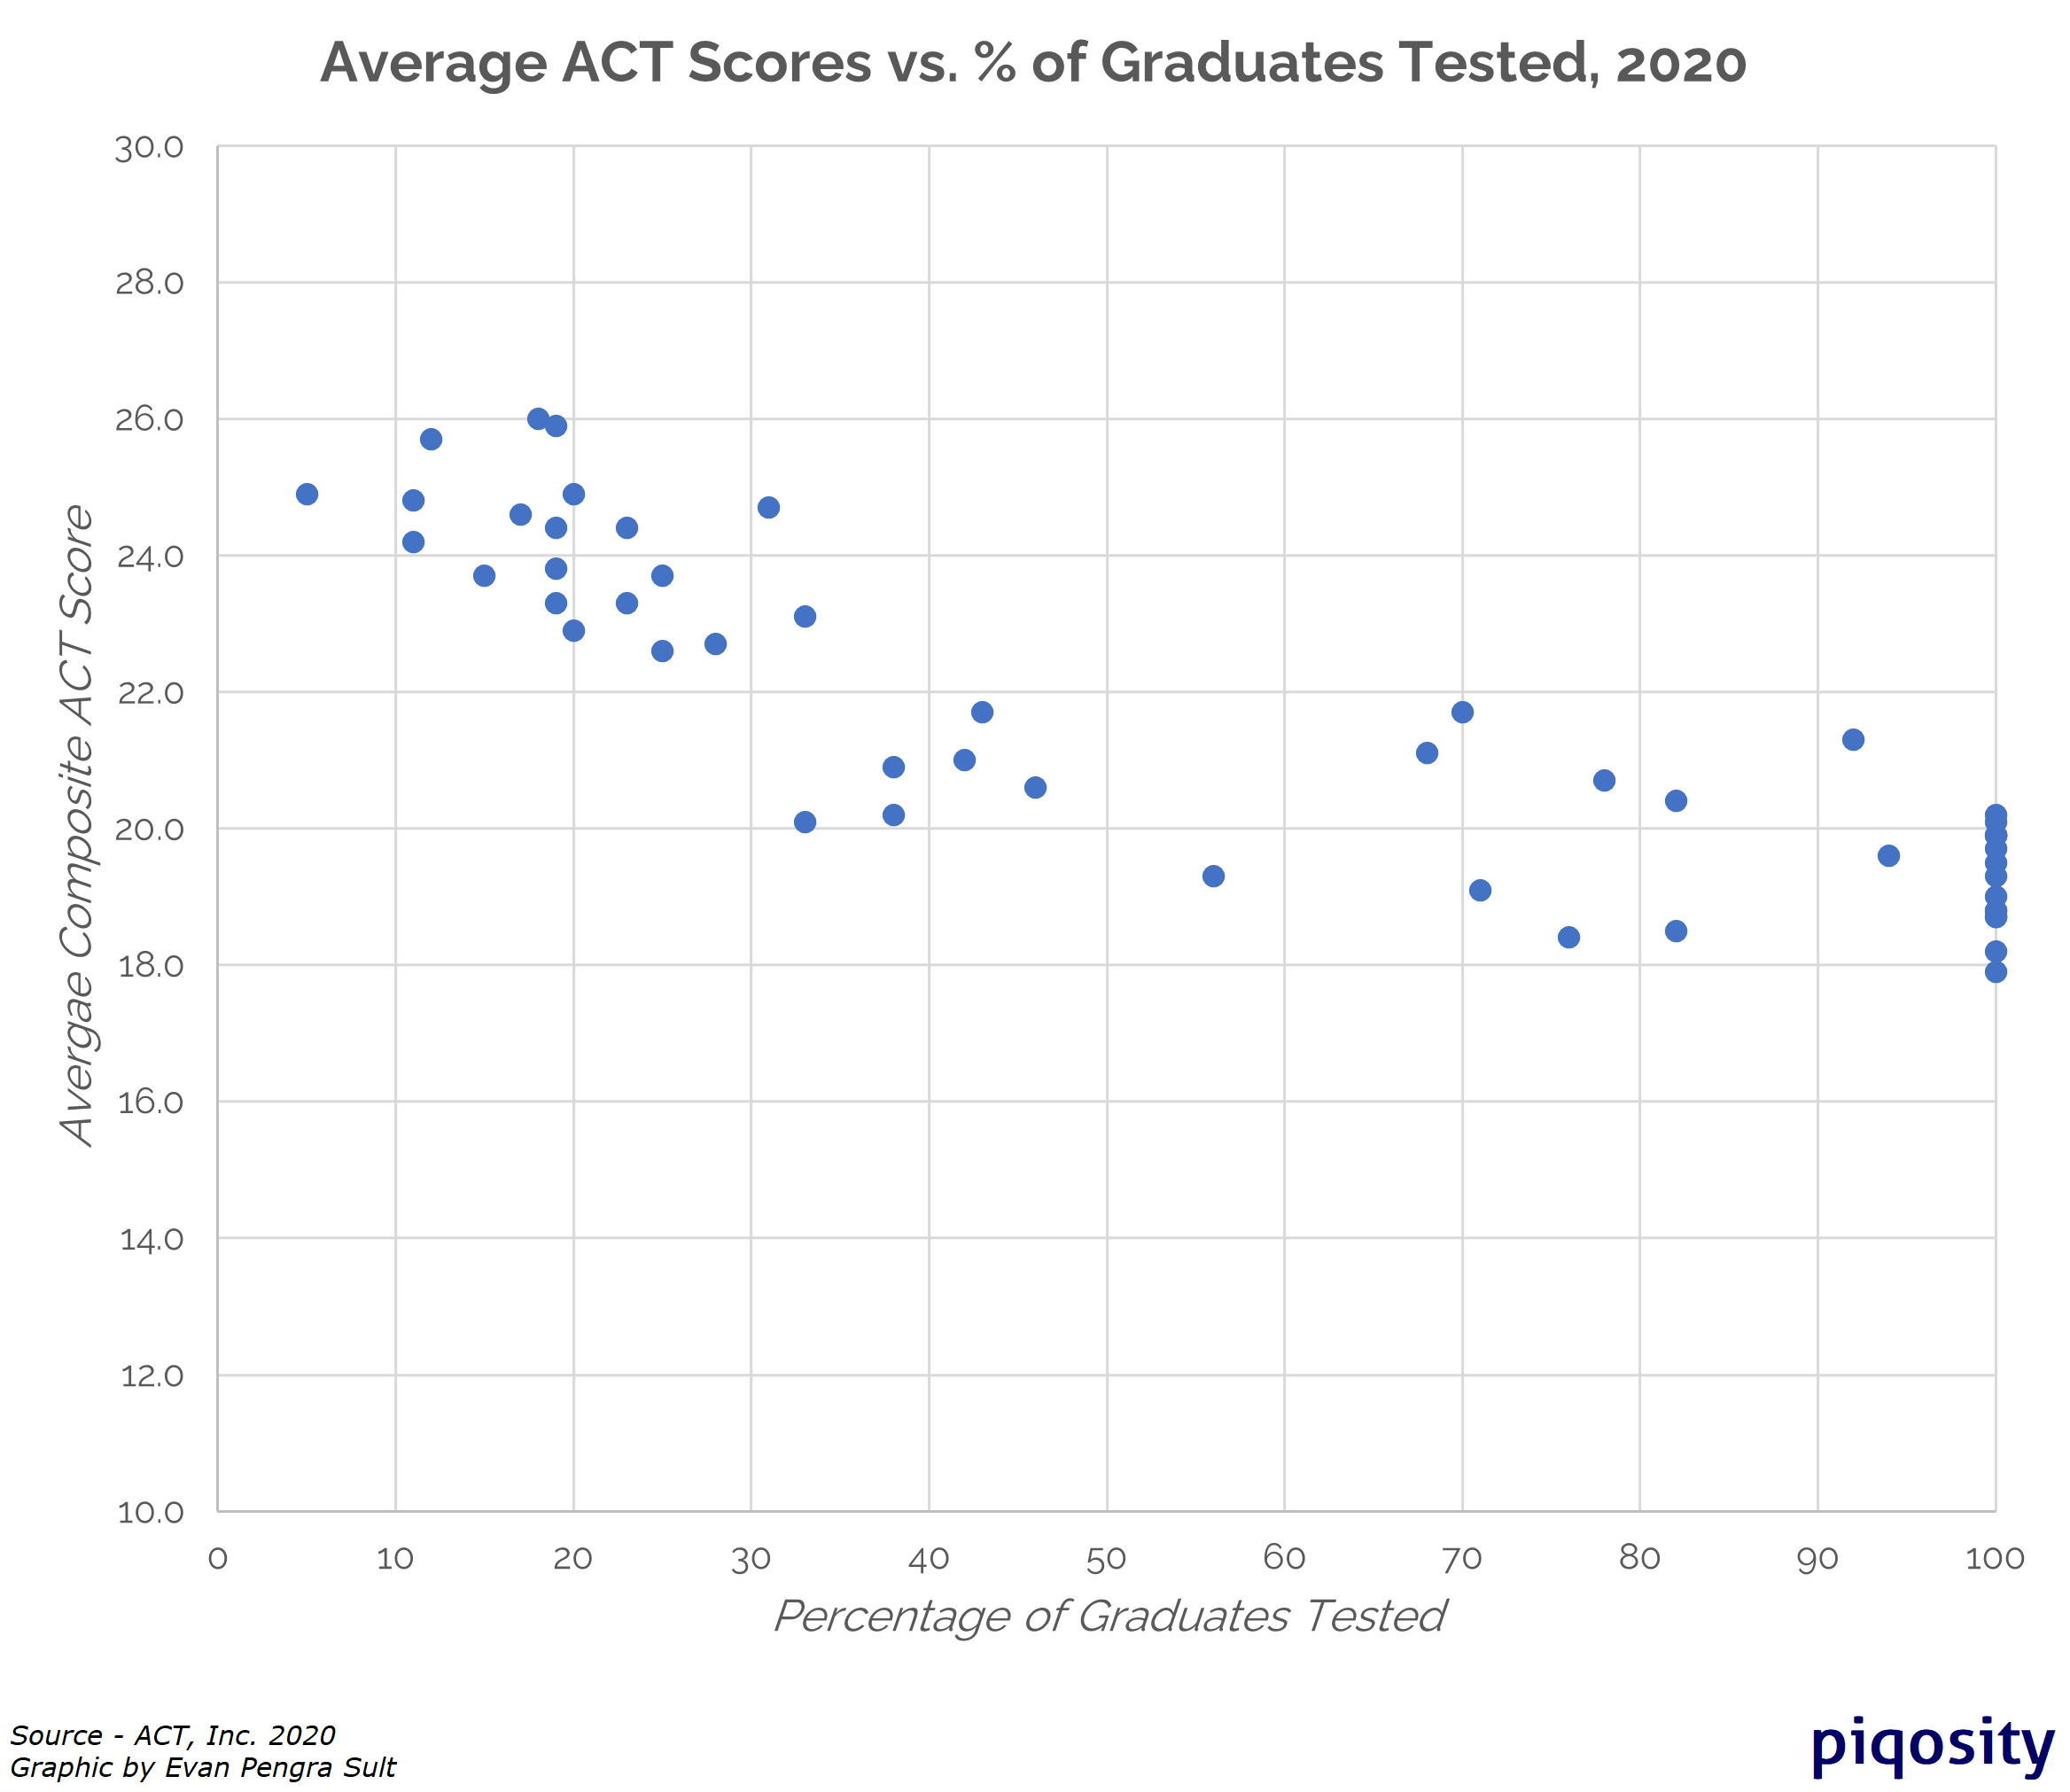 act scores vs percentage tested 2020